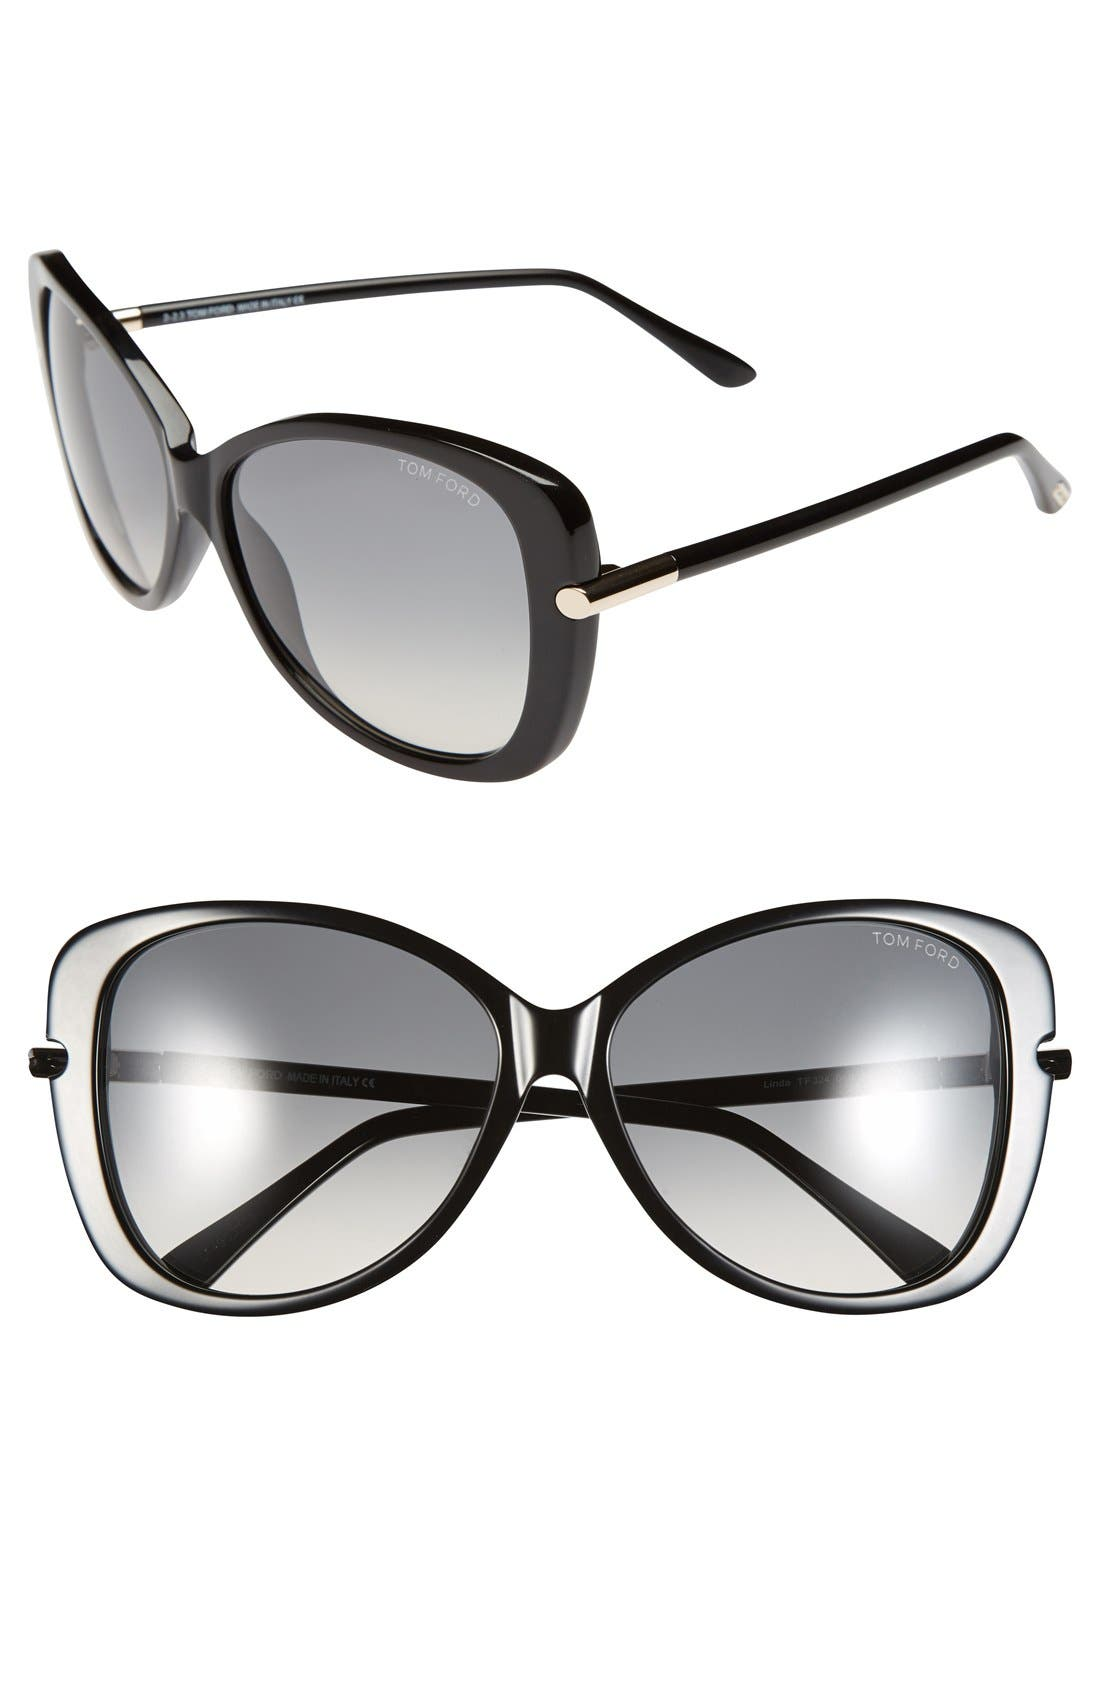 Alternate Image 1 Selected - Tom Ford 'Linda' 59mm Sunglasses